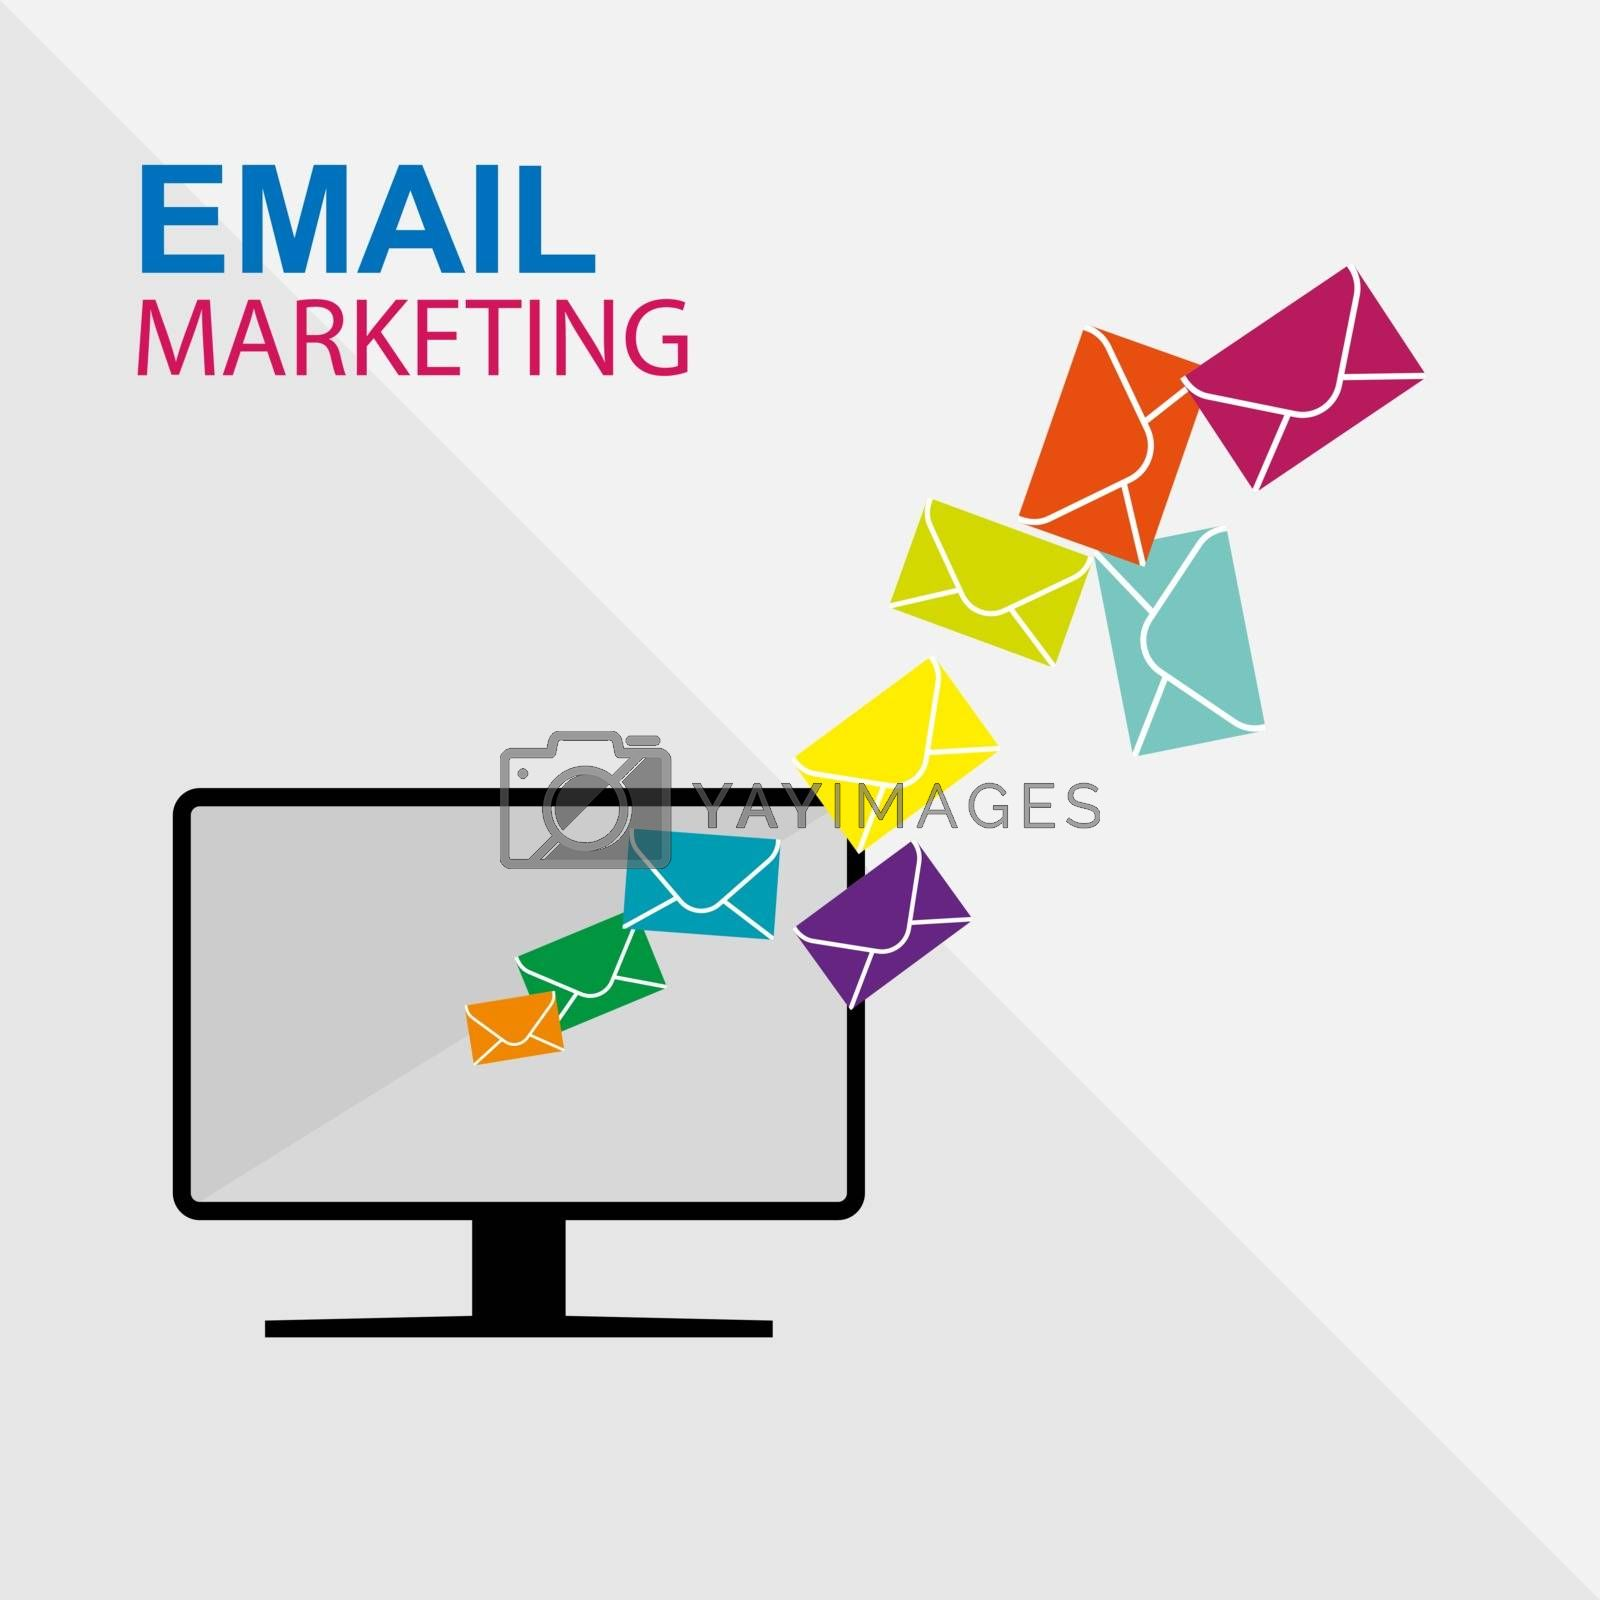 Email marketing from computer, mailing, simple flat design